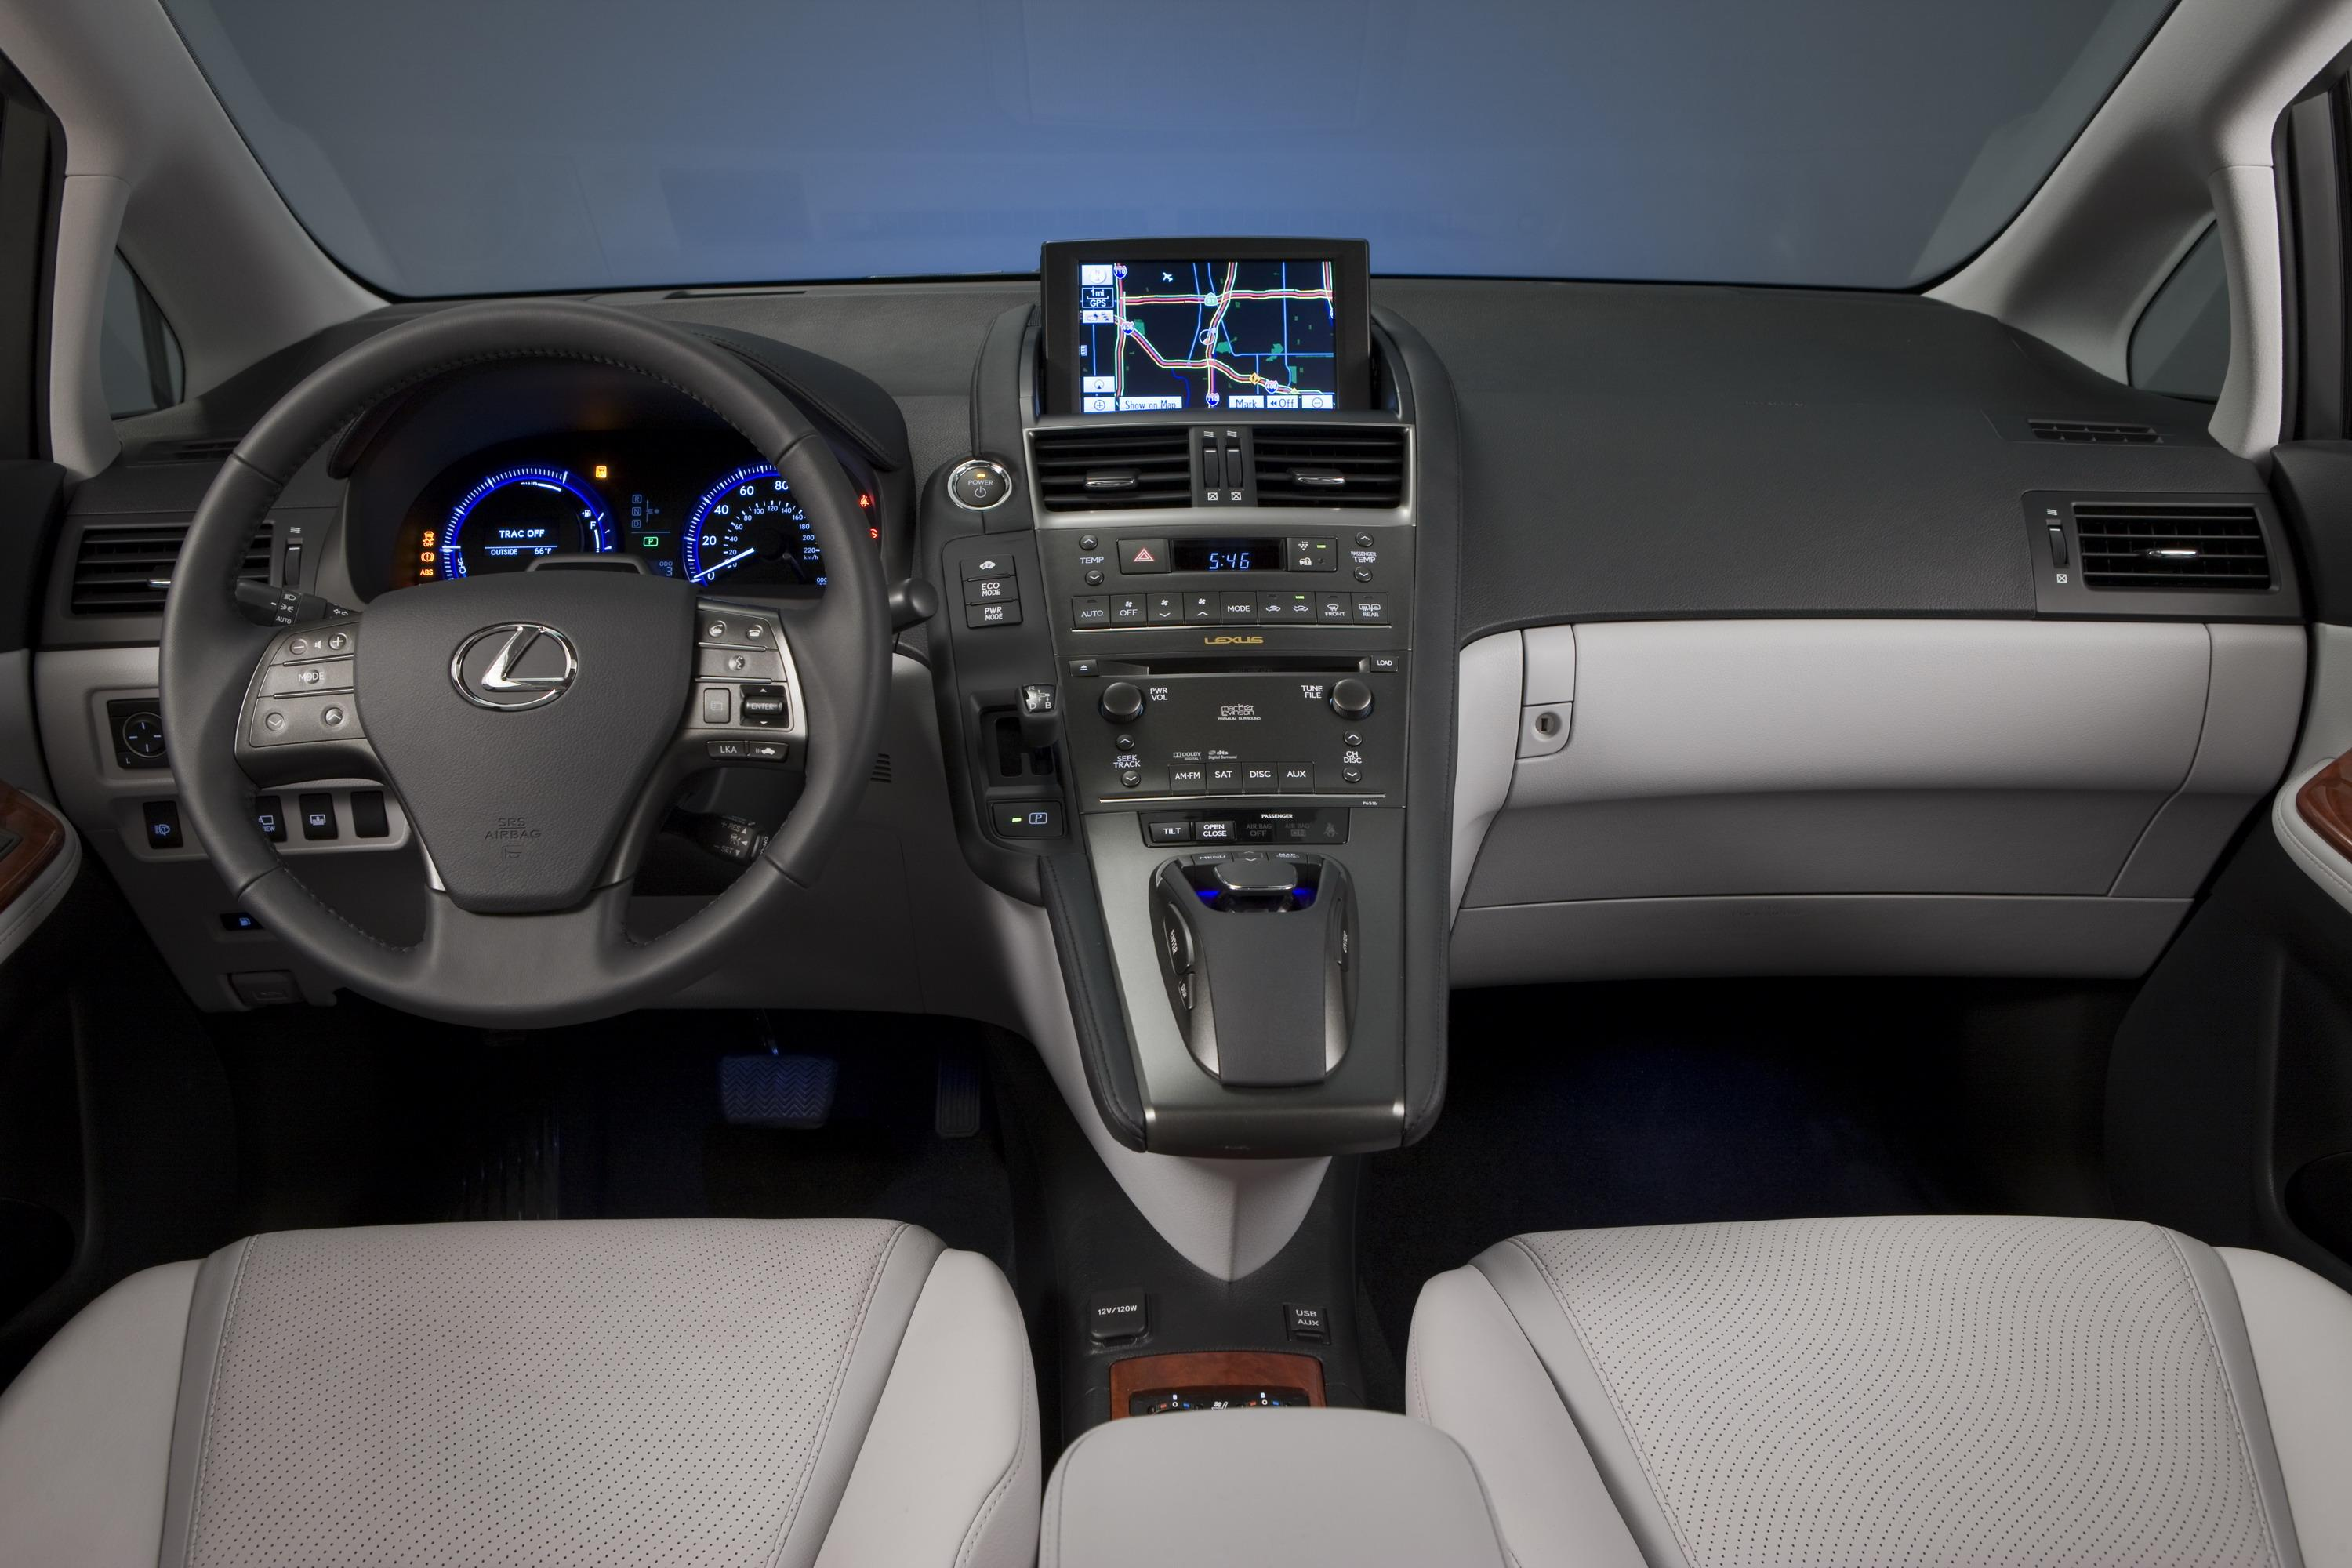 2010 Lexus HS 250h | Top Speed. »